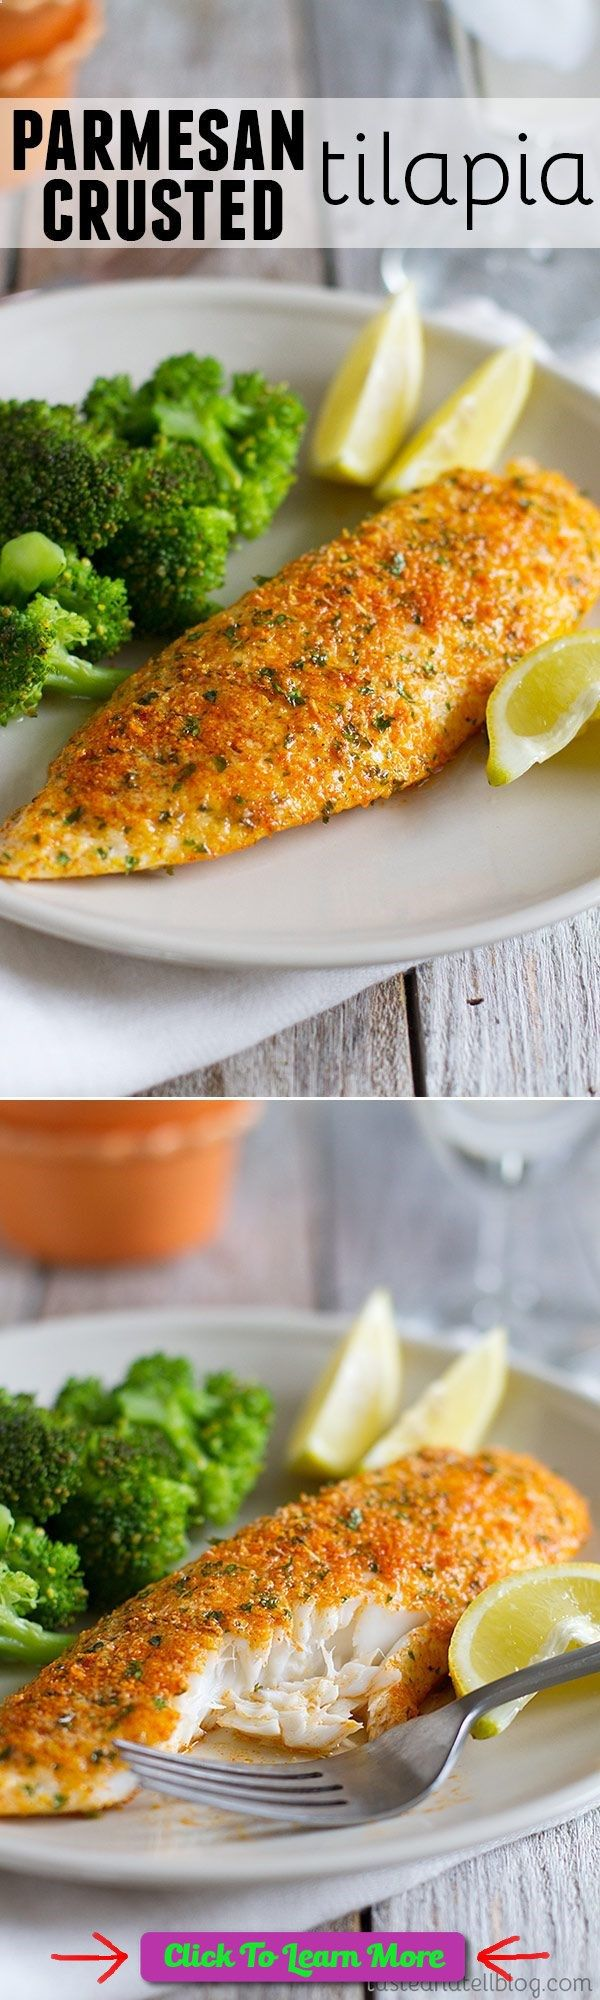 This Parmesan Crusted Tilapia is a simple fish recipe that is done in 20 minutes and will even impress non-fish lovers! #health #fitness #weightloss #healthyrecipes #weightlossrecipes